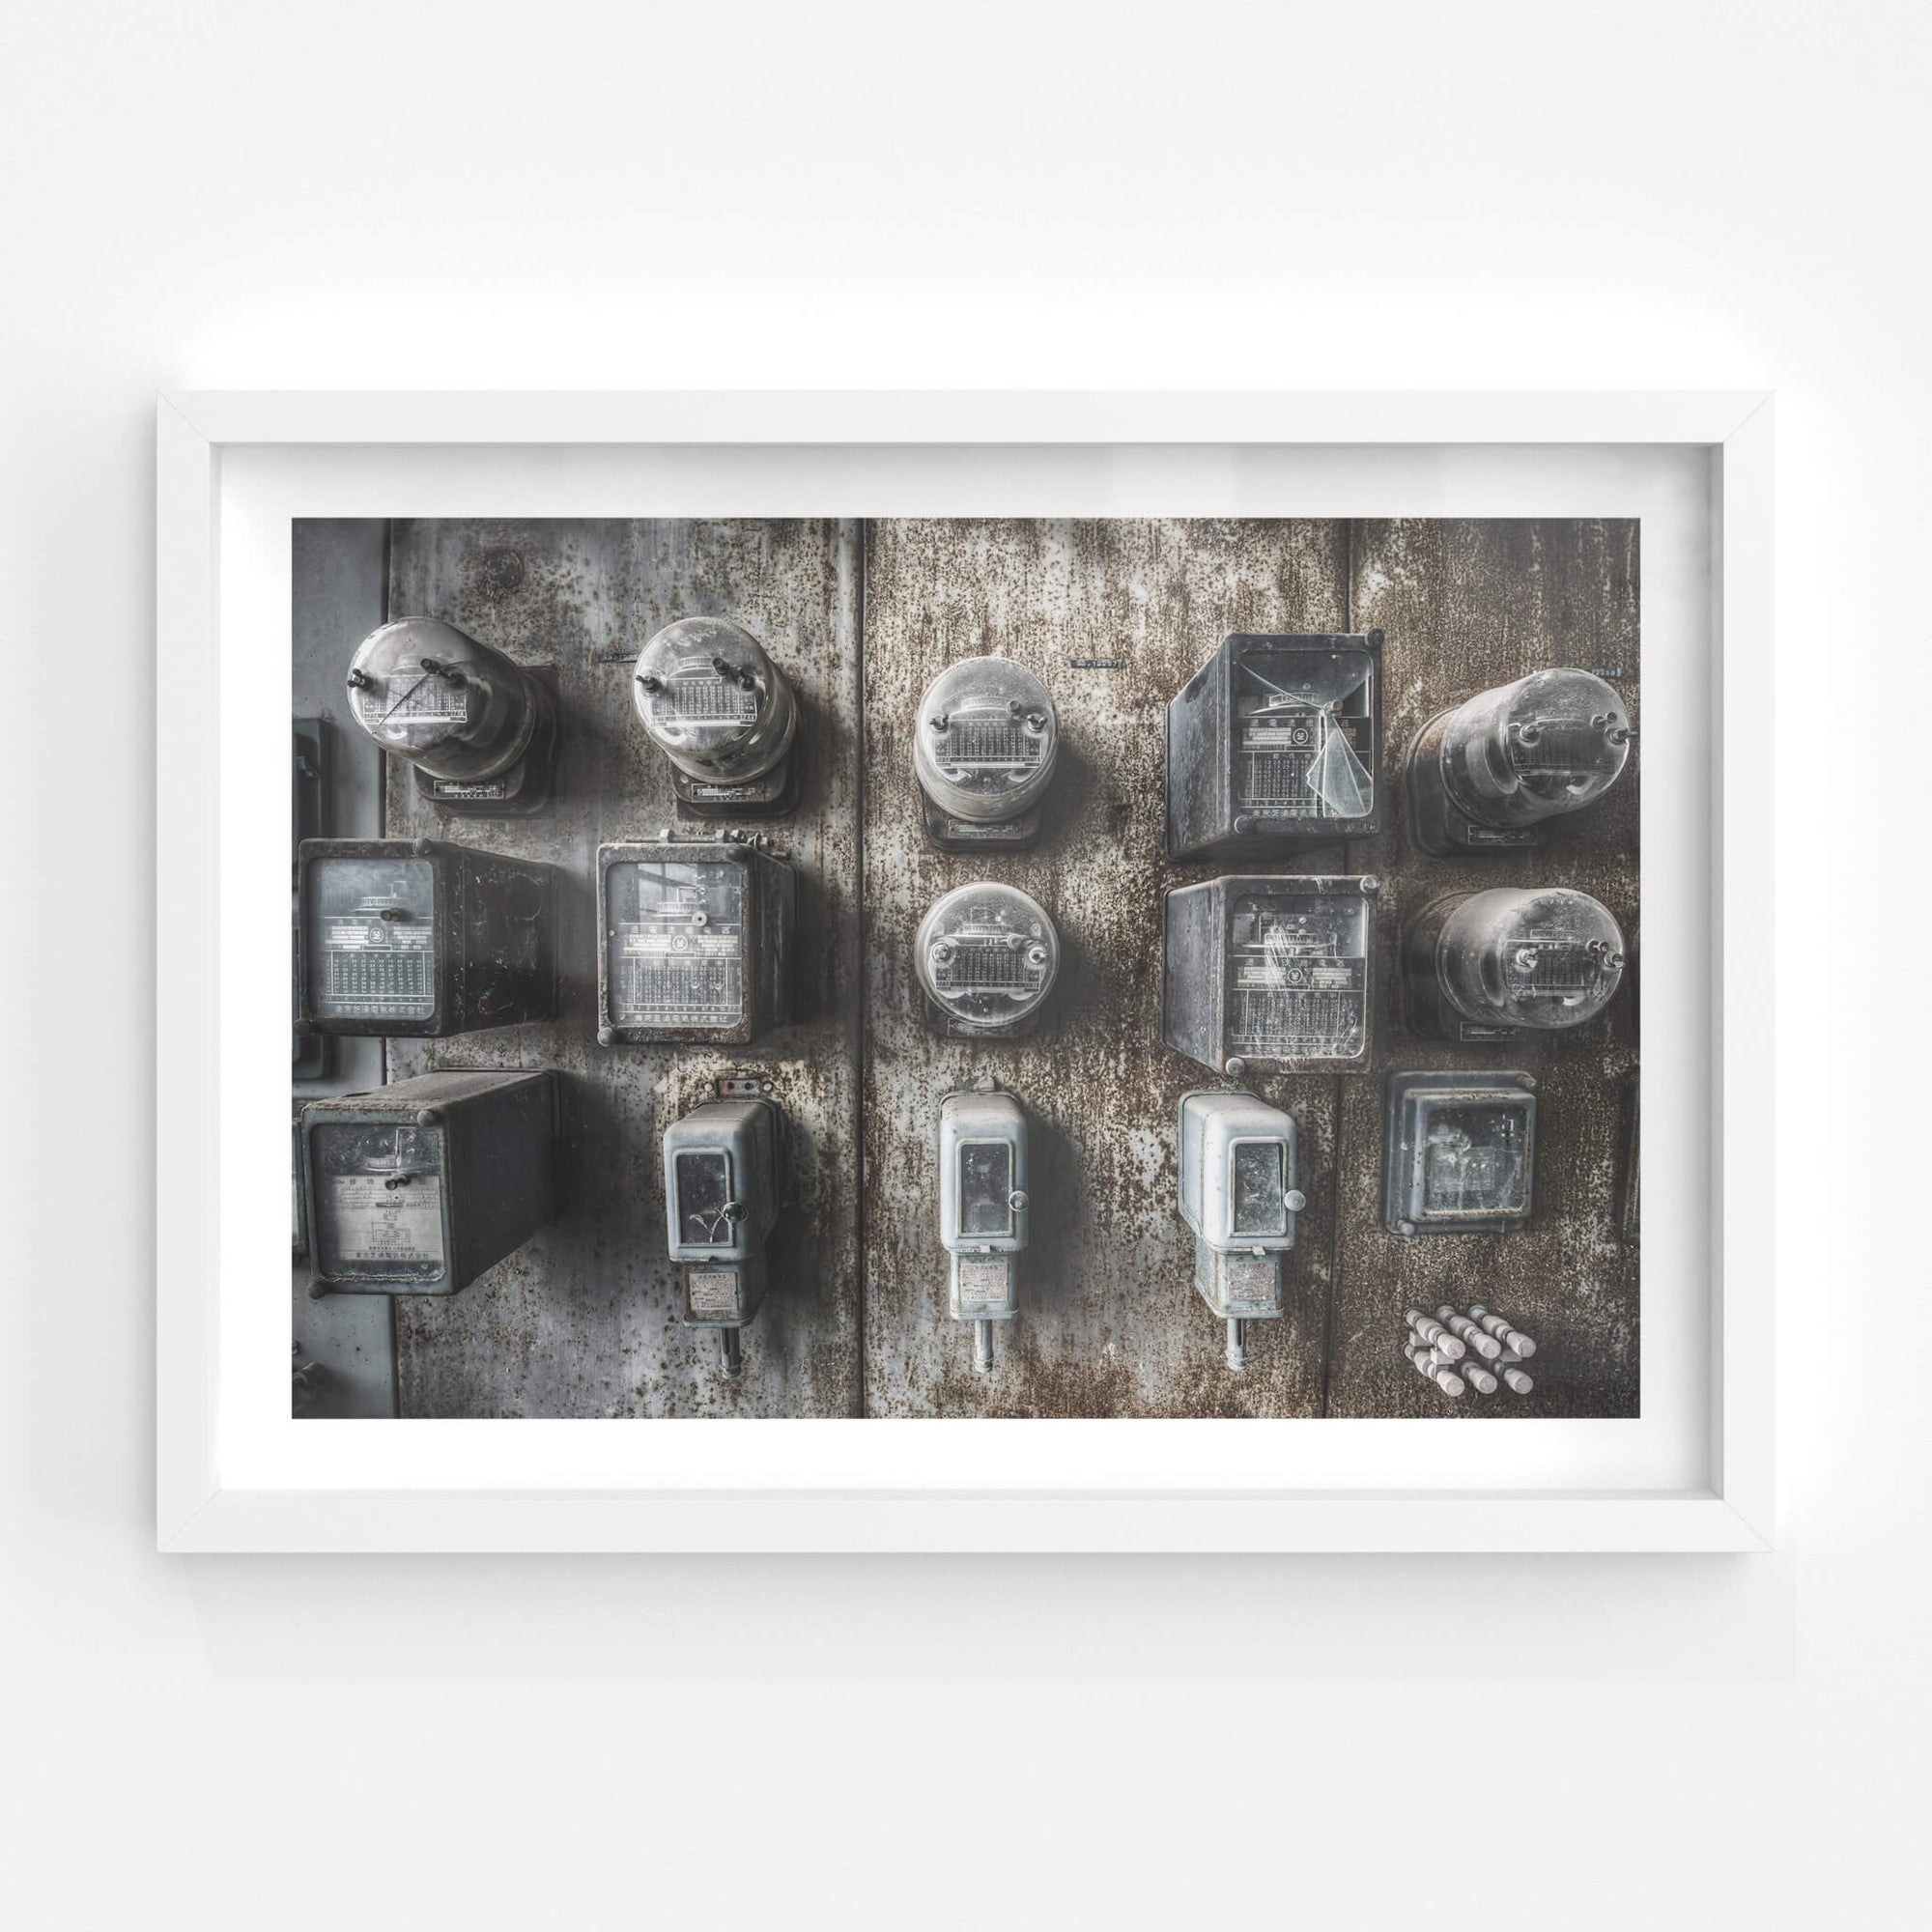 Meters | Shimizusawa Thermal Power Plant Fine Art Print - Lost Collective Shop